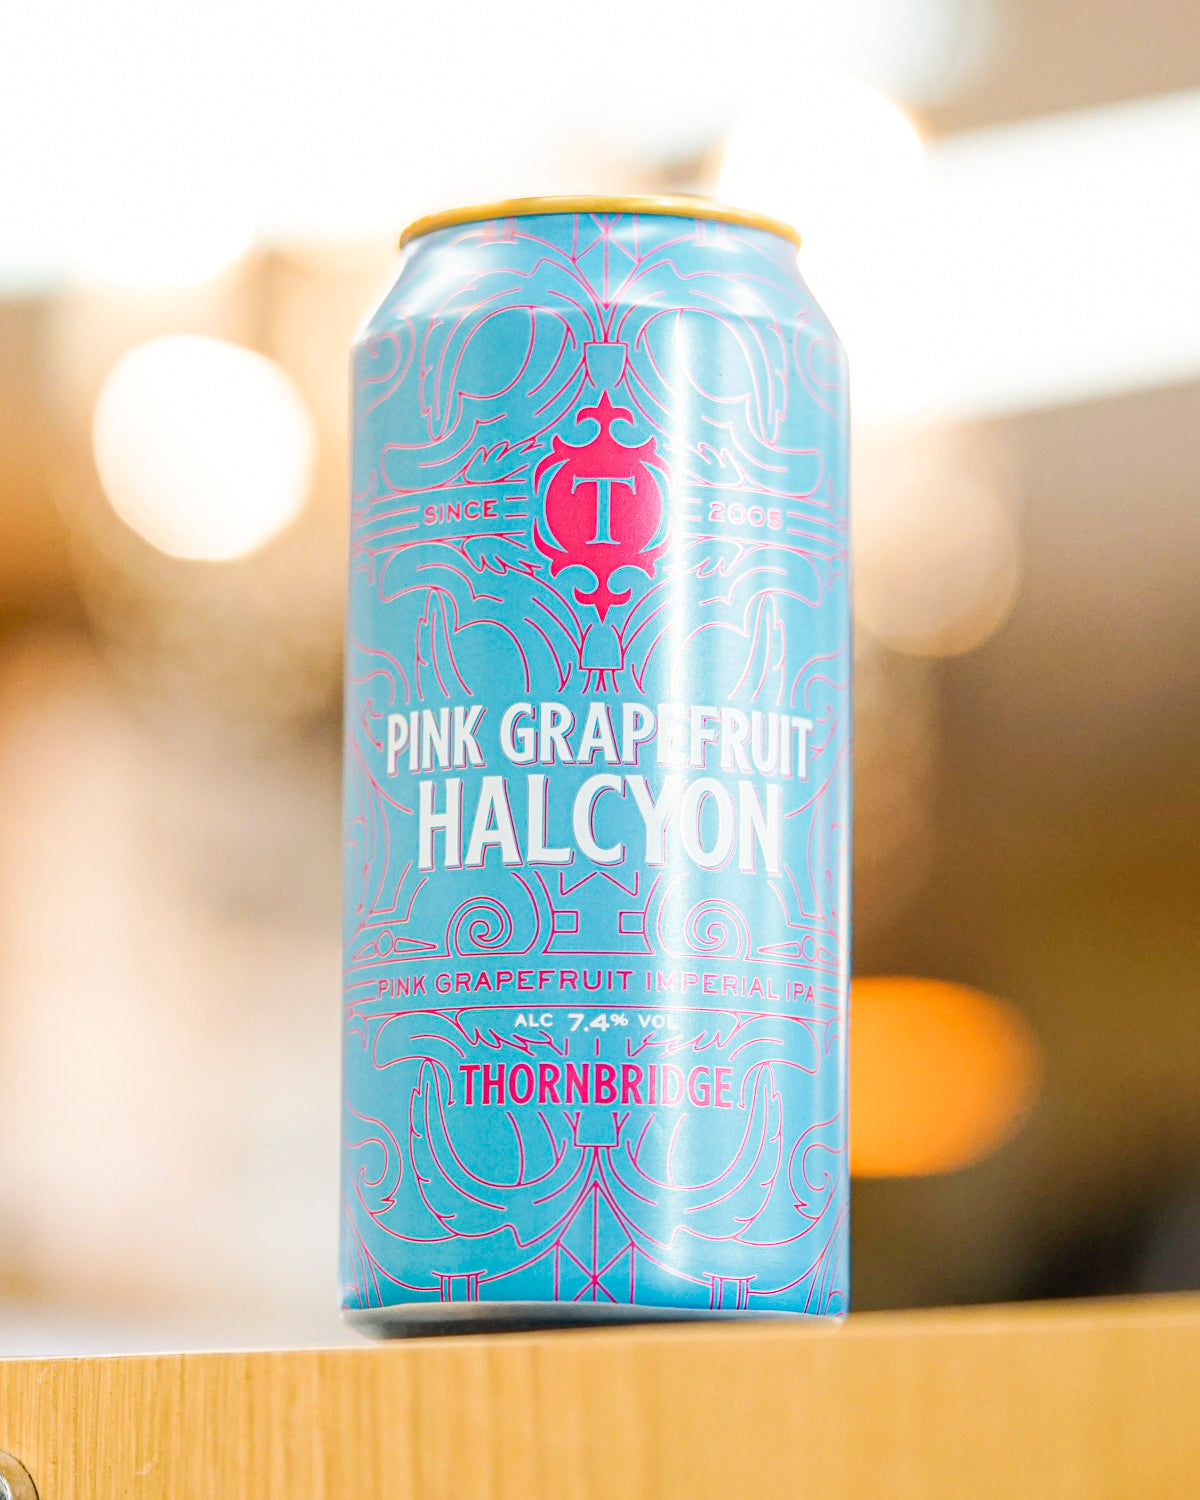 Thornbridge 'Halcyon' Pink Grapefruit Imperial IPA 440mL